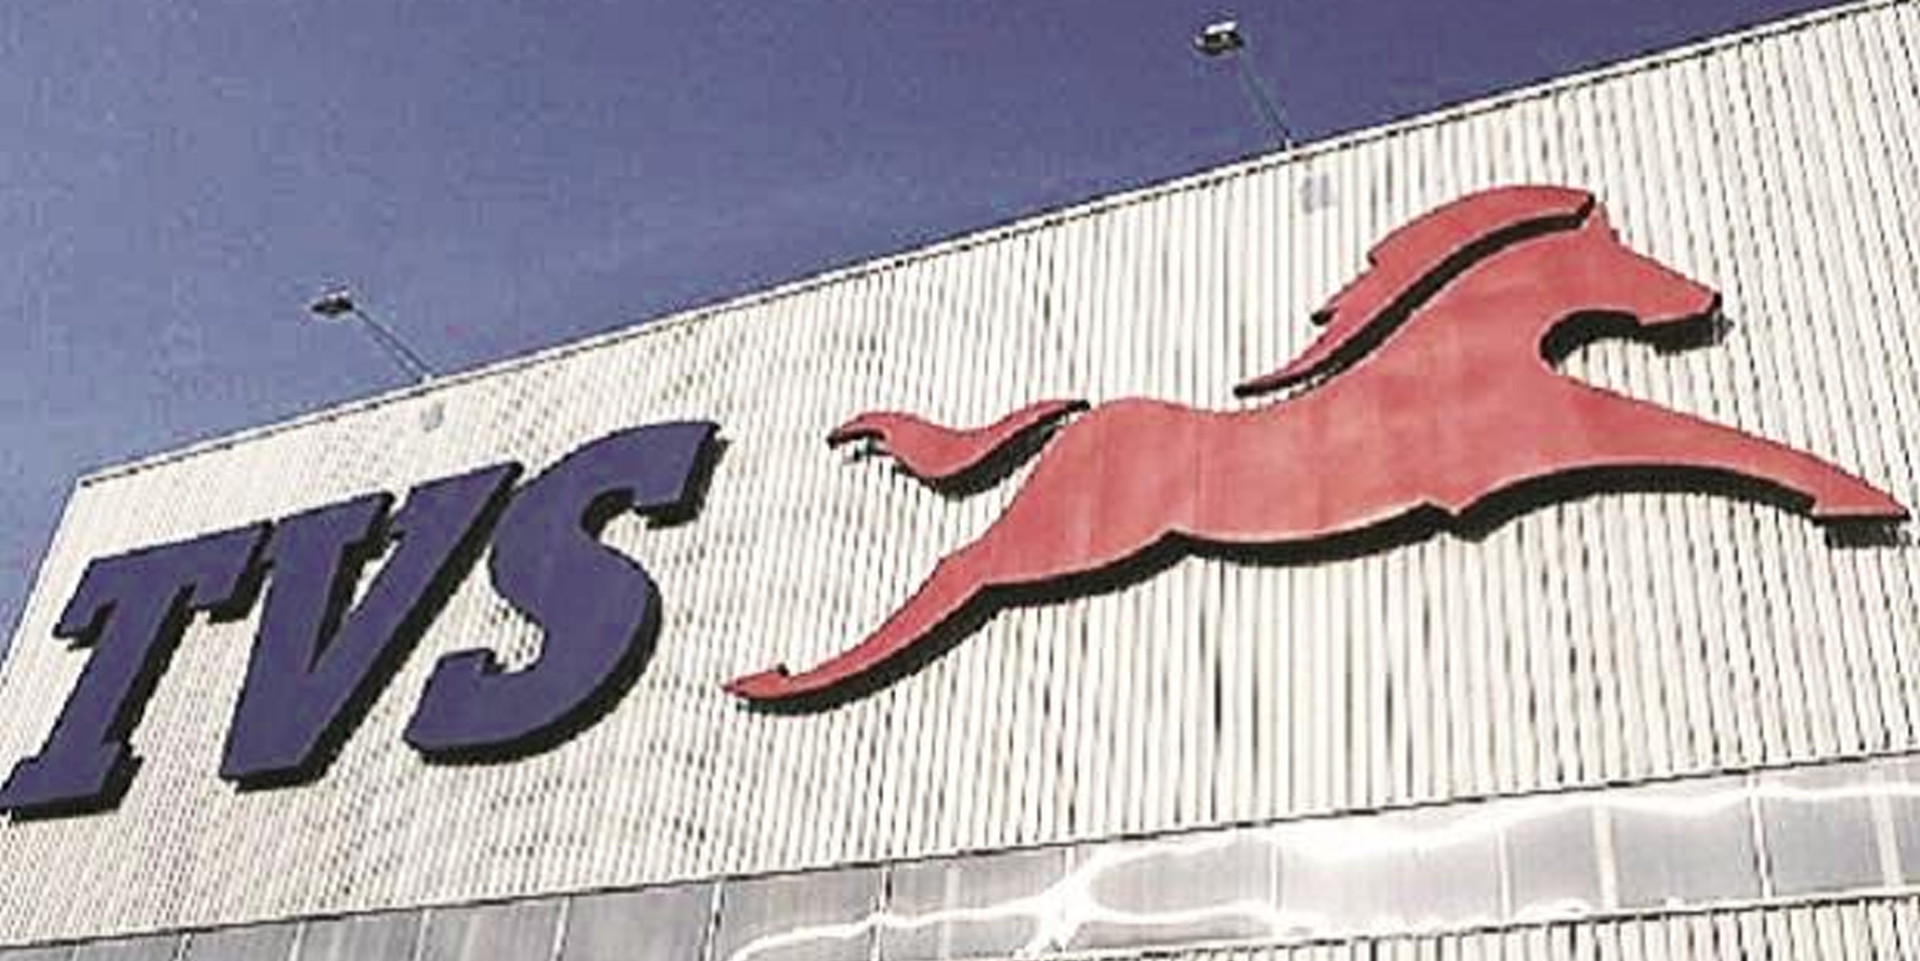 TVS Supply Chain set to launch Rs 1,100-crore warehousing venture